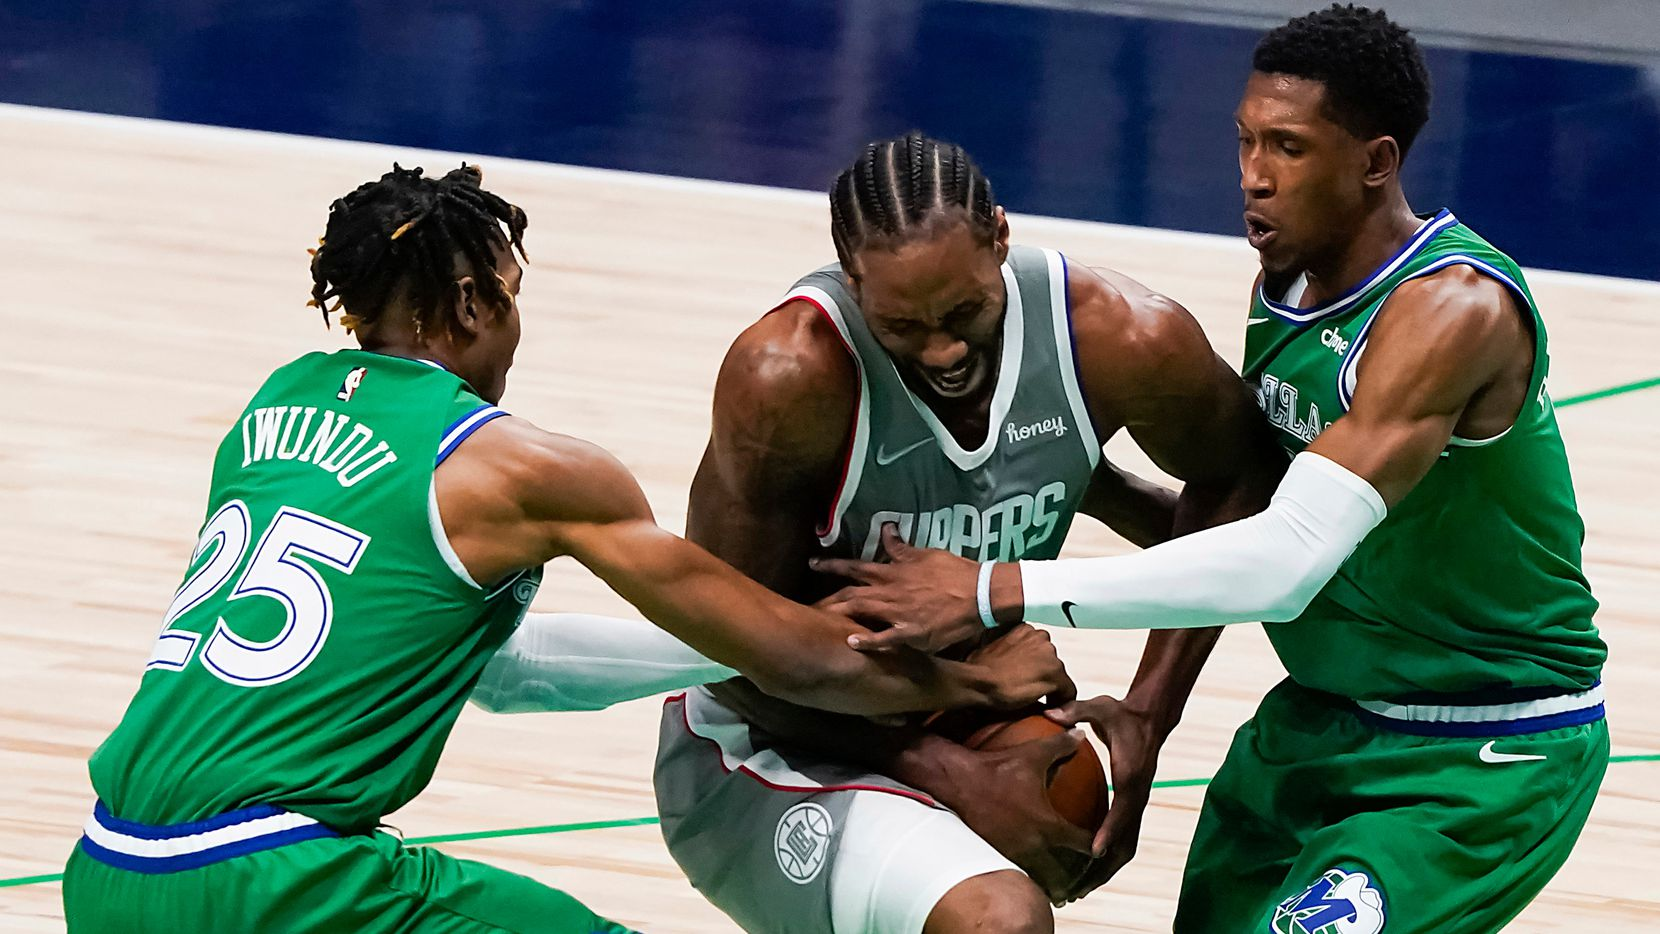 LA Clippers forward Kawhi Leonard (2) is wrapped up by Dallas Mavericks guard Josh Richardson (0) and forward Wes Iwundu (25) during the first quarter of an NBA basketball game at American Airlines Center on Wednesday, March 17, 2021, in Dallas.